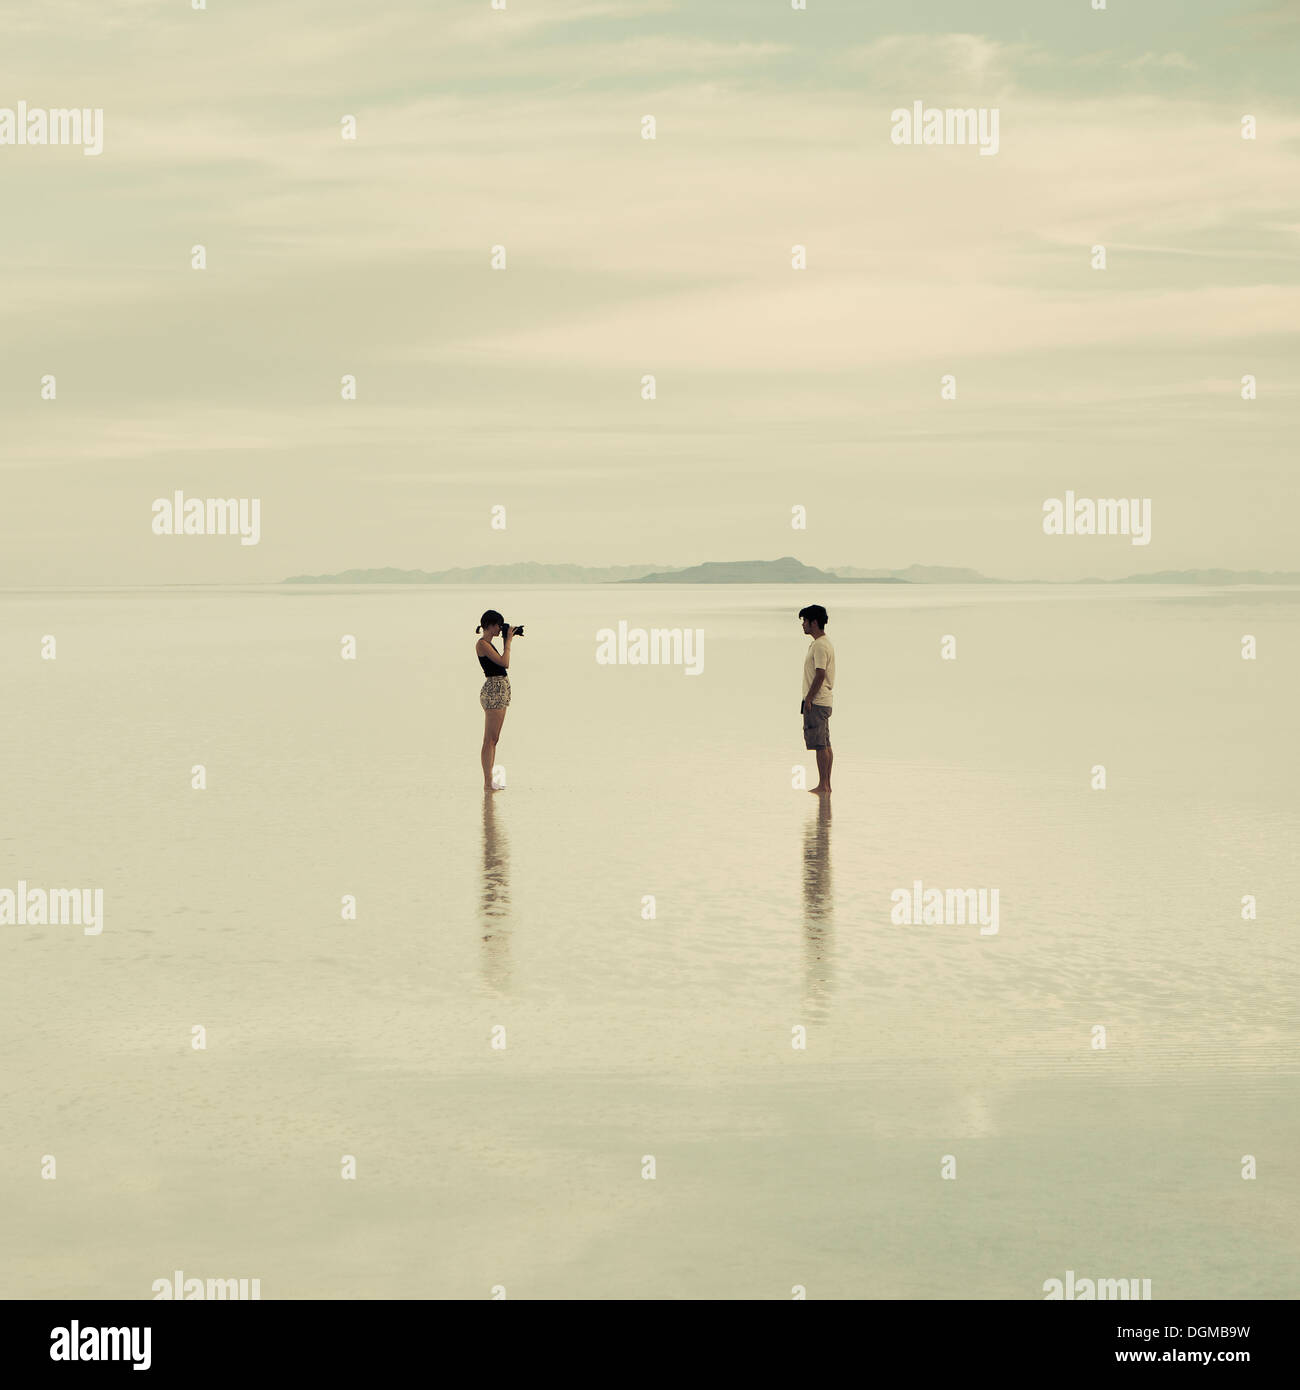 Man and woman standing on the flooded Bonneville Salt Flats, taking photographs of each other at dusk. - Stock Image